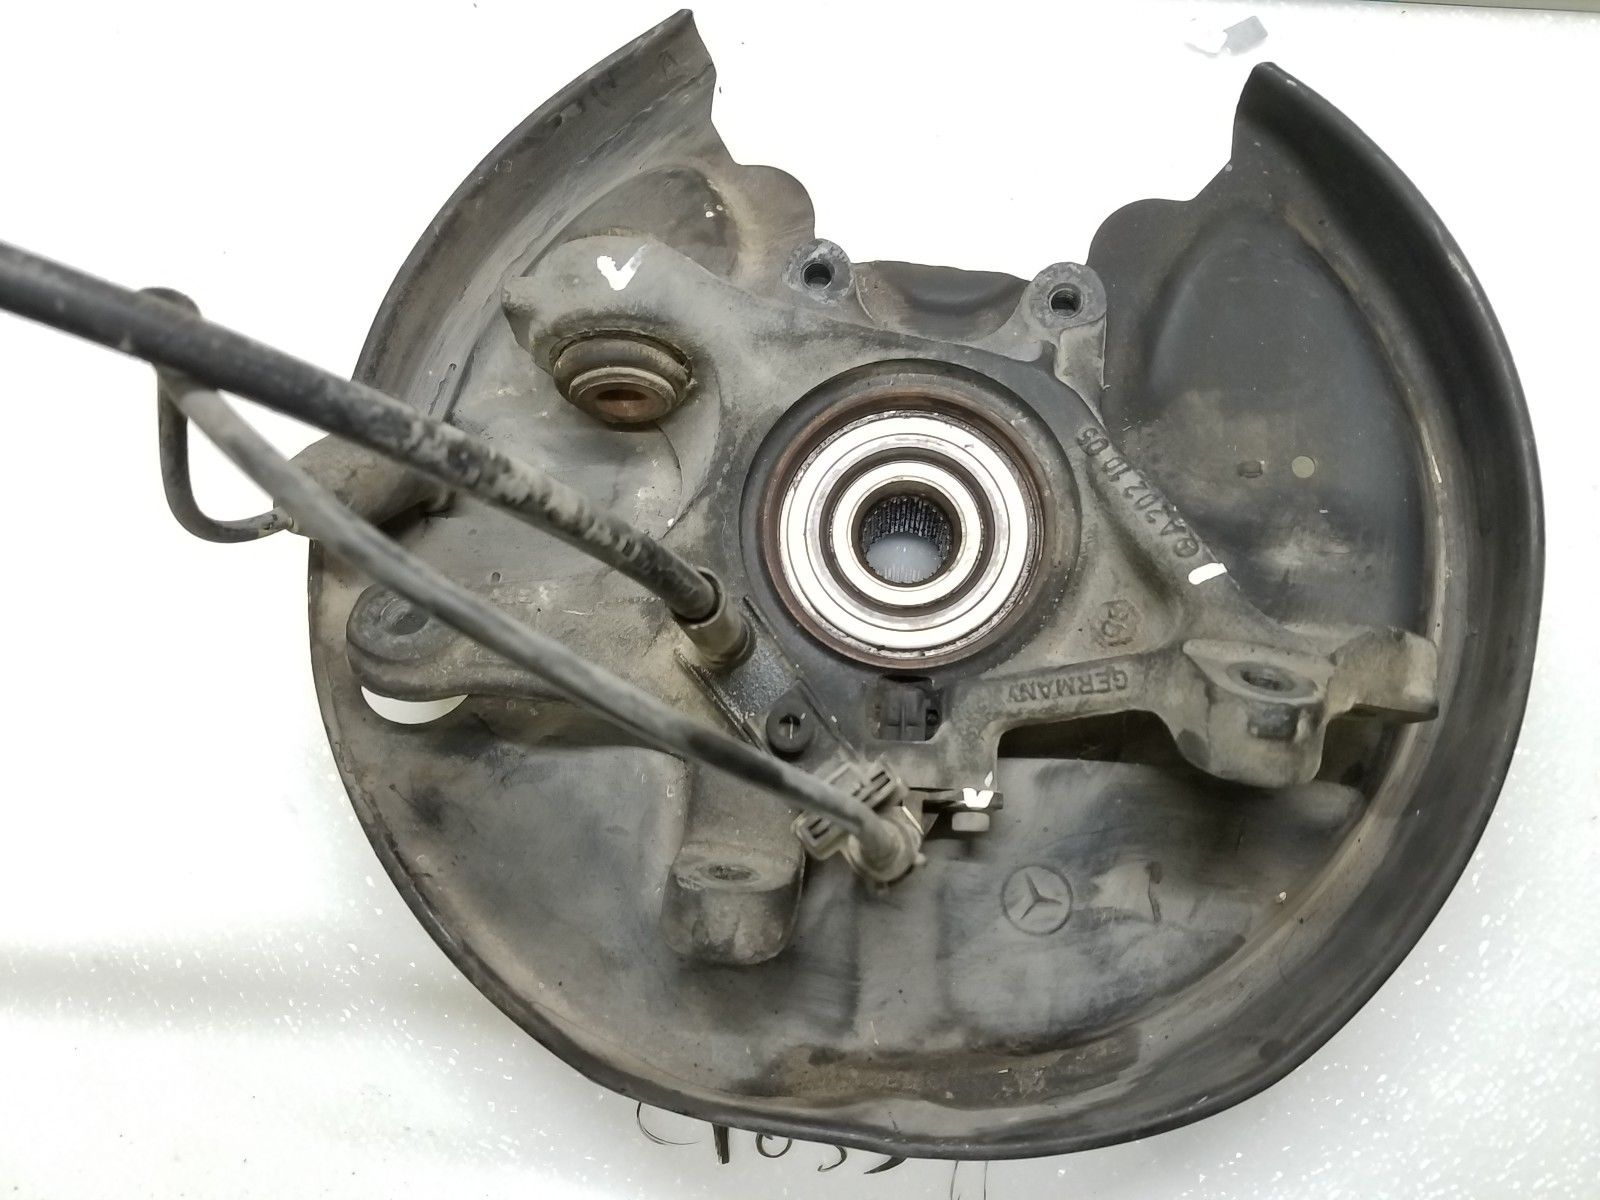 2004-2008 CHRYSLER CROSSFIRE REAR LEFT SPINDLE KNUCKLE HUB BEARING Does not apply